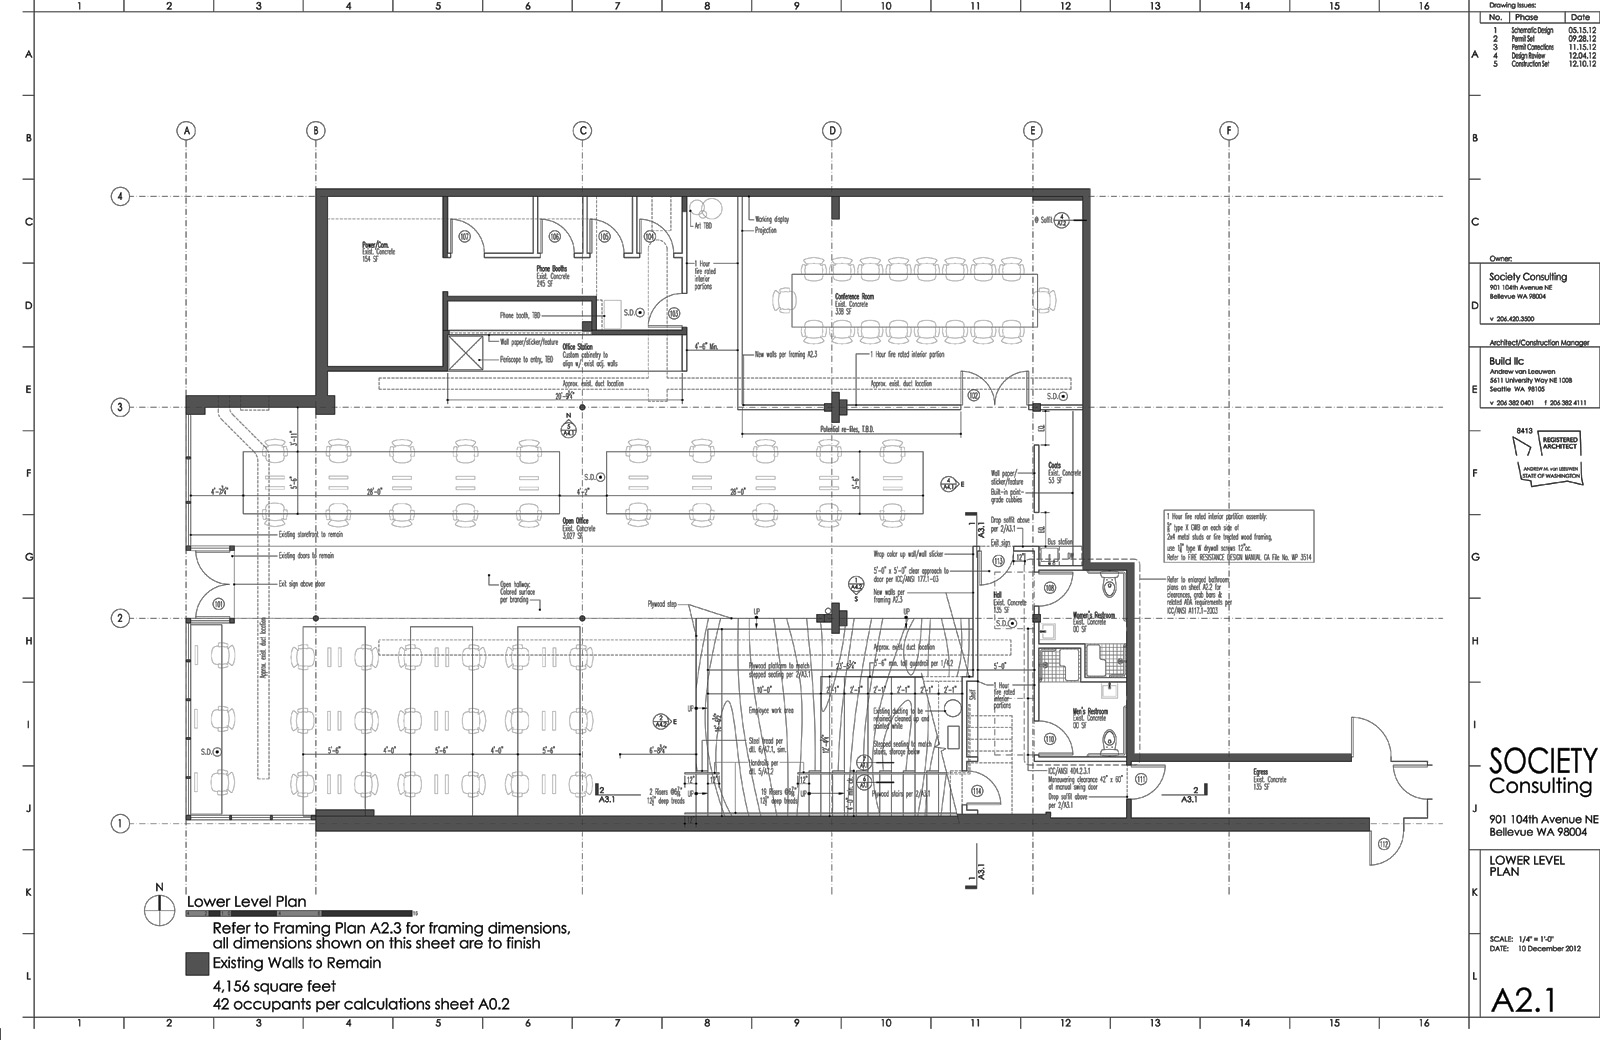 How to find floor plans for existing commercial buildings Buy architectural plans